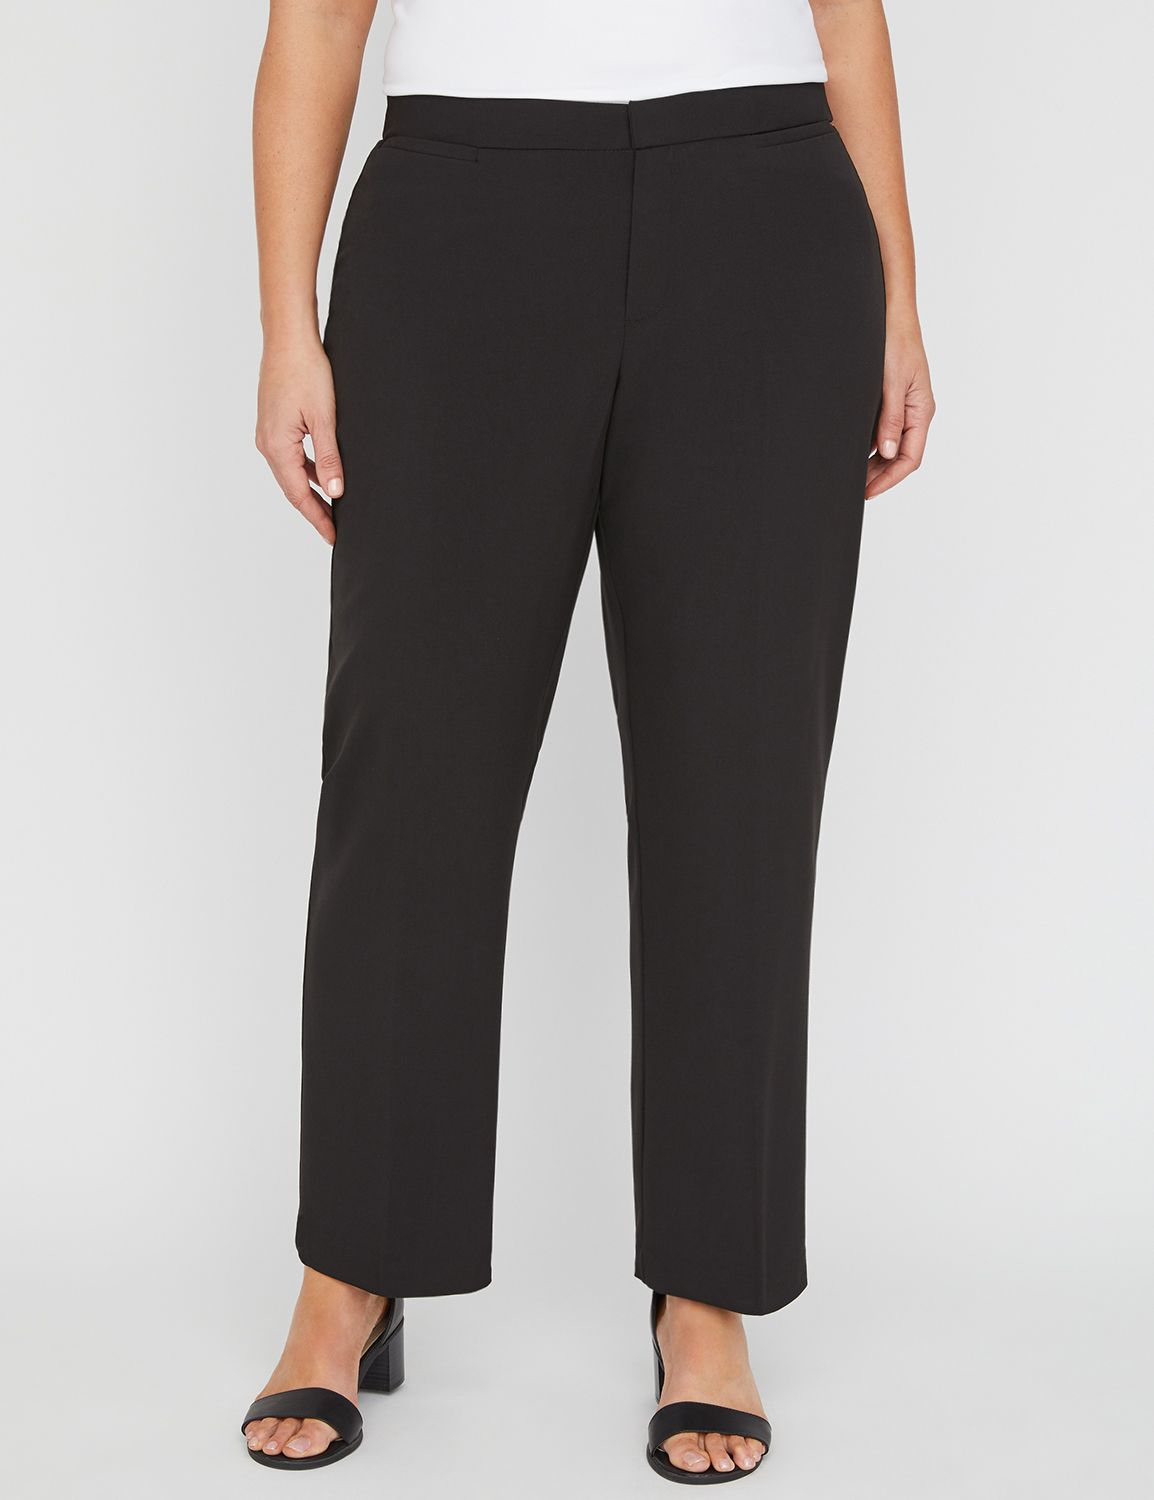 Right Fit Pant (Moderately Curvy) Right Fit Pant (Moderately Curvy) MP-300009889